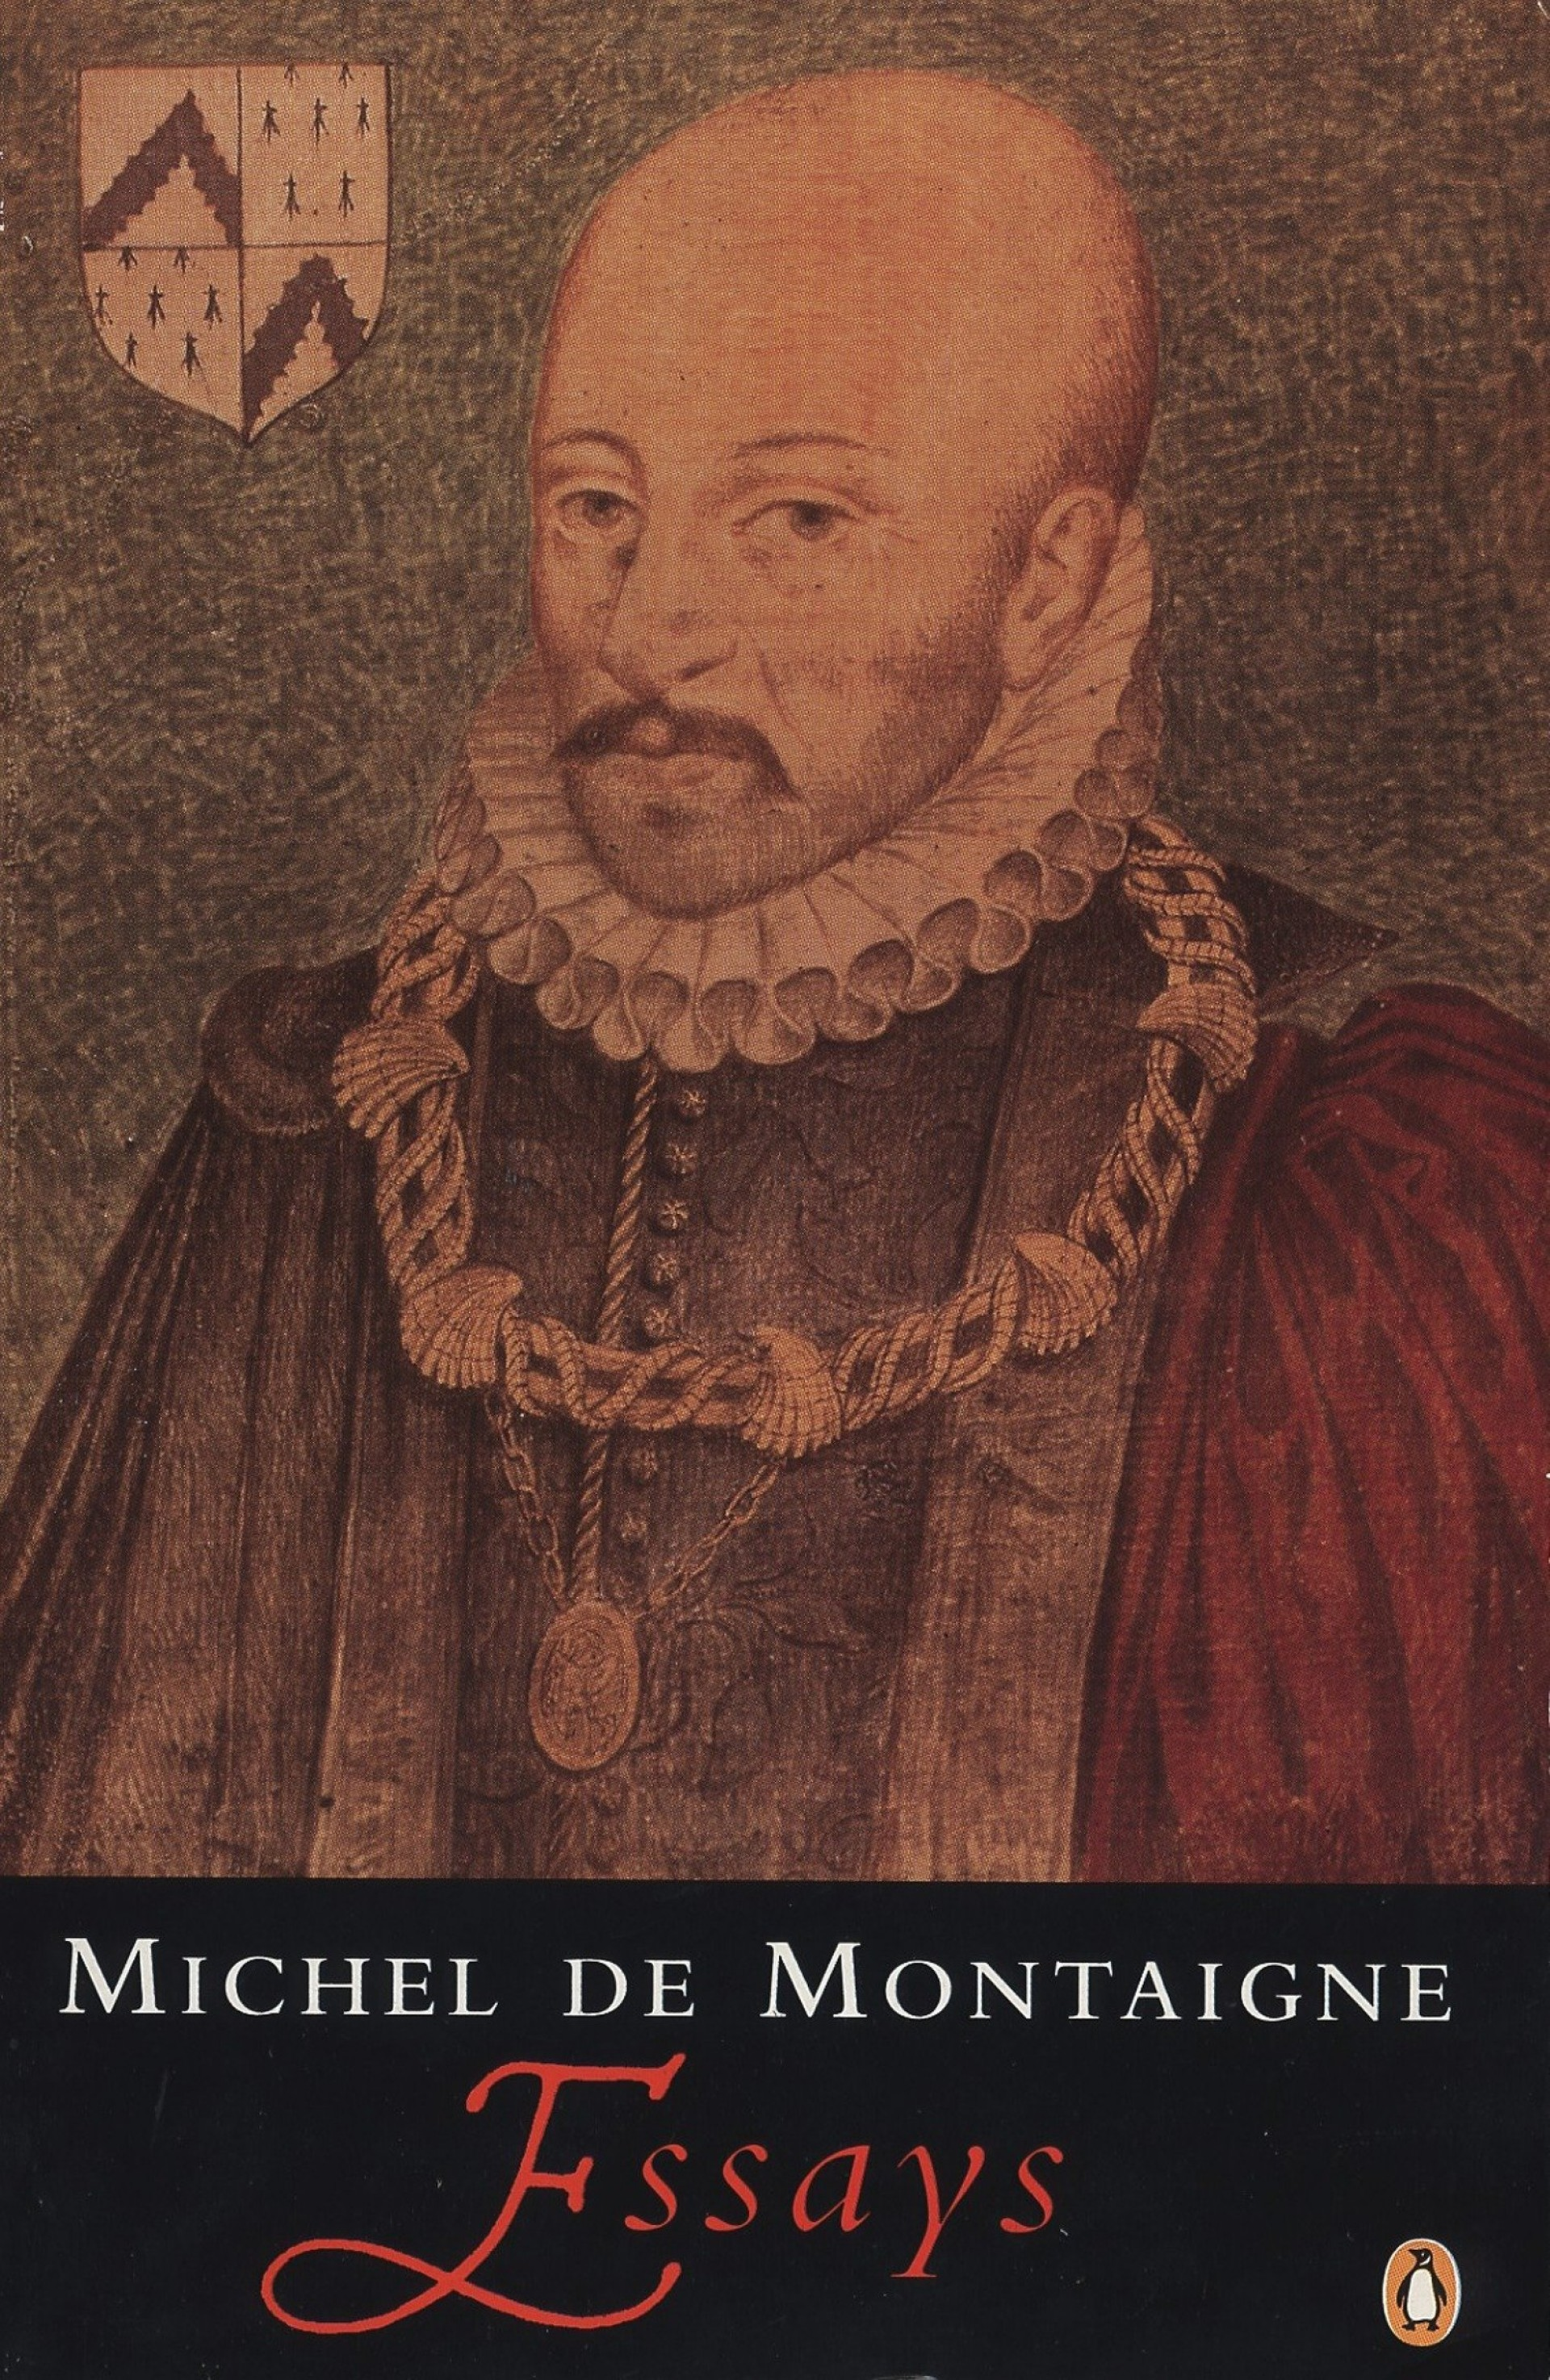 004 Montaigne Essays 91rkj2zfmvl Essay Archaicawful Summary On Experience Quotes Best Translation 1920